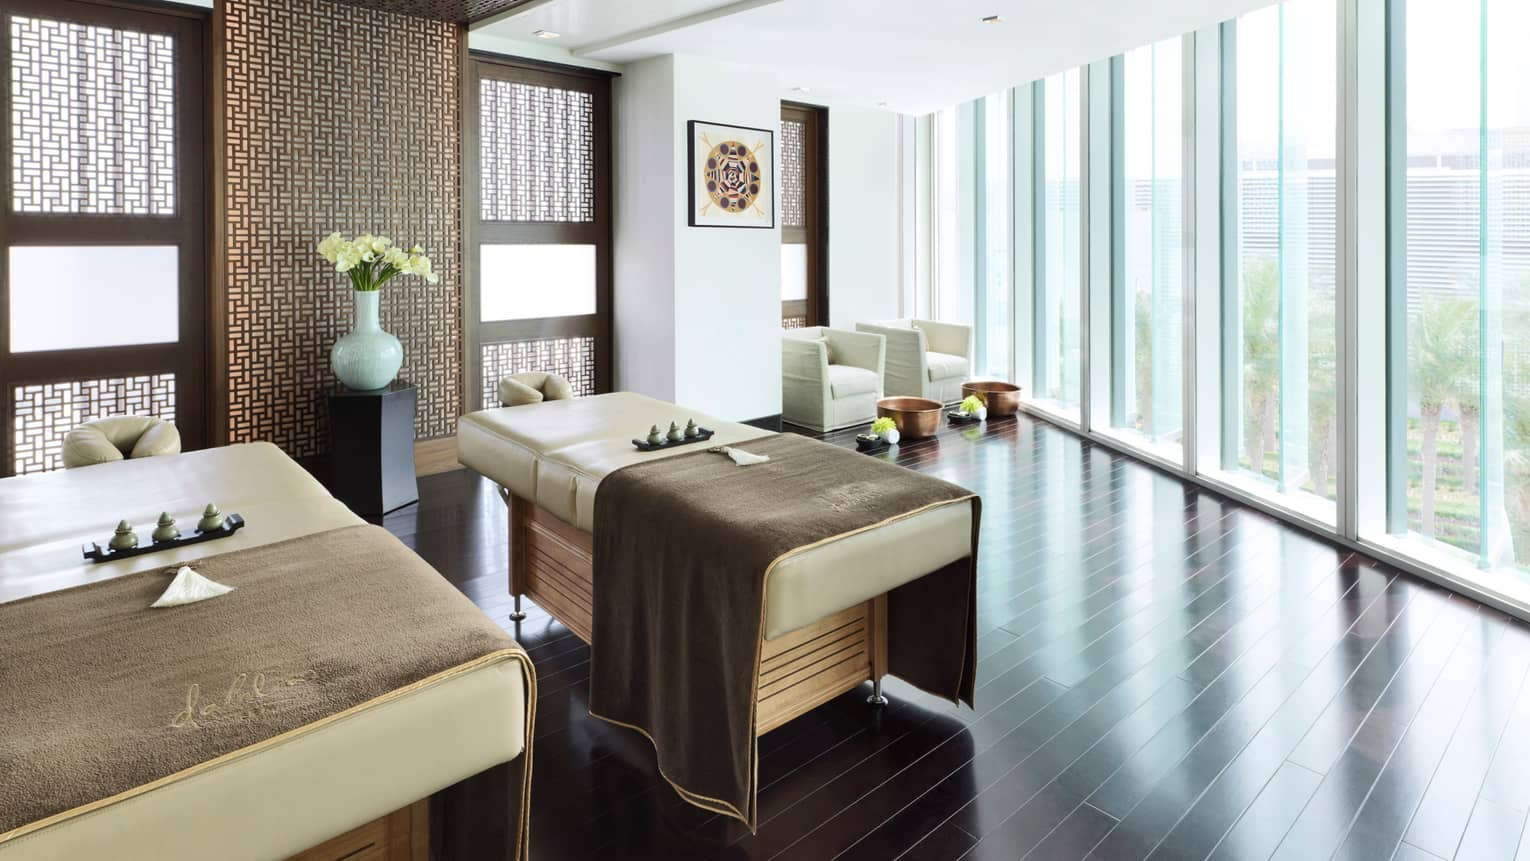 Dahlia Spa Couples Suite two massage tables with soft brown blankets in sunny room with wood floor, big windows